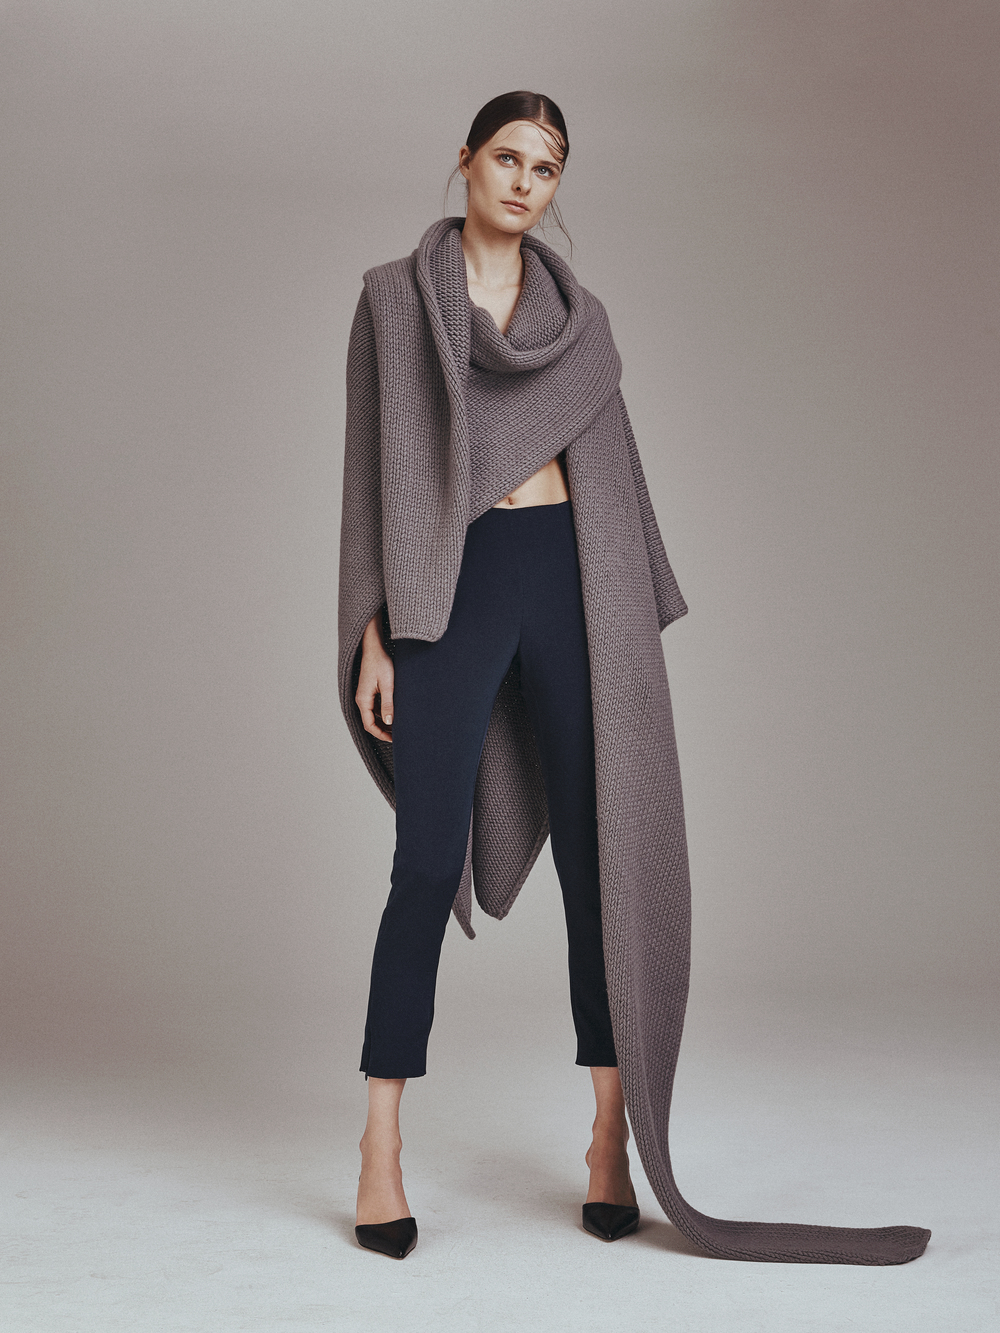 ANGELO SCARF  Superliuma Knit 100% Cashmere  Partially Hand-Knitted in Italy  -   PIPPA PANTS  4 Ply Silk